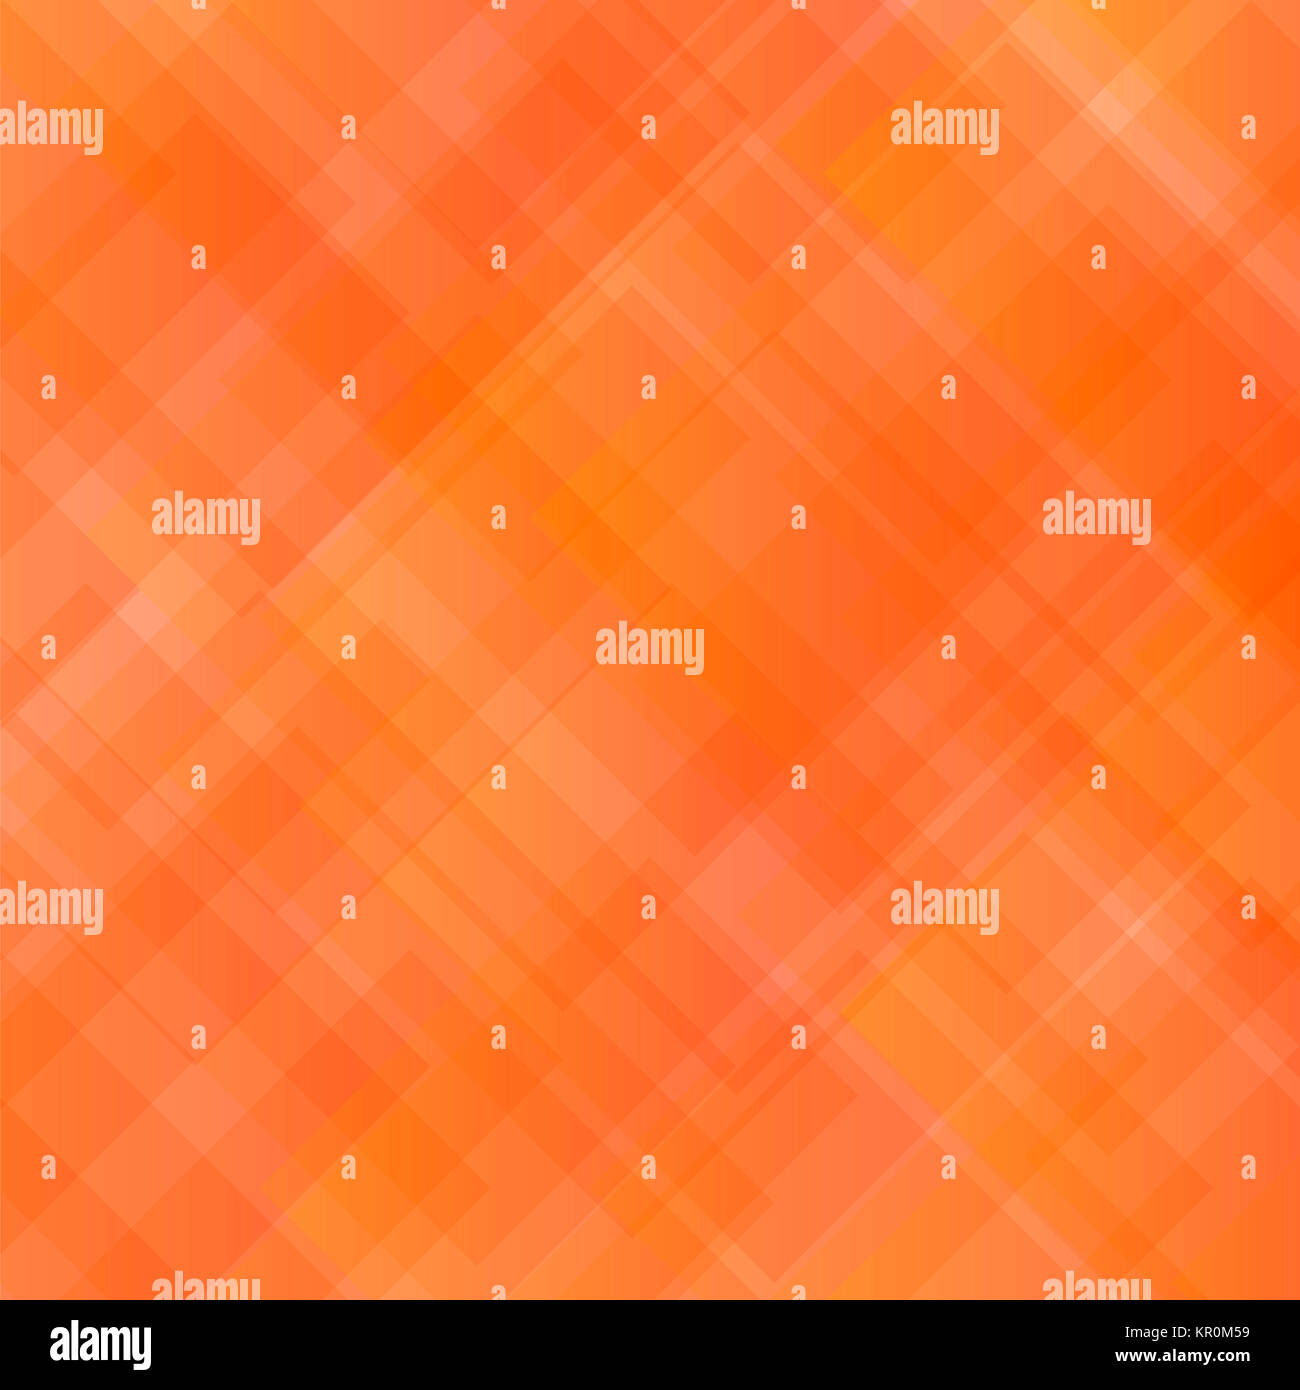 Abstract Orange Square Pattern. Stock Photo